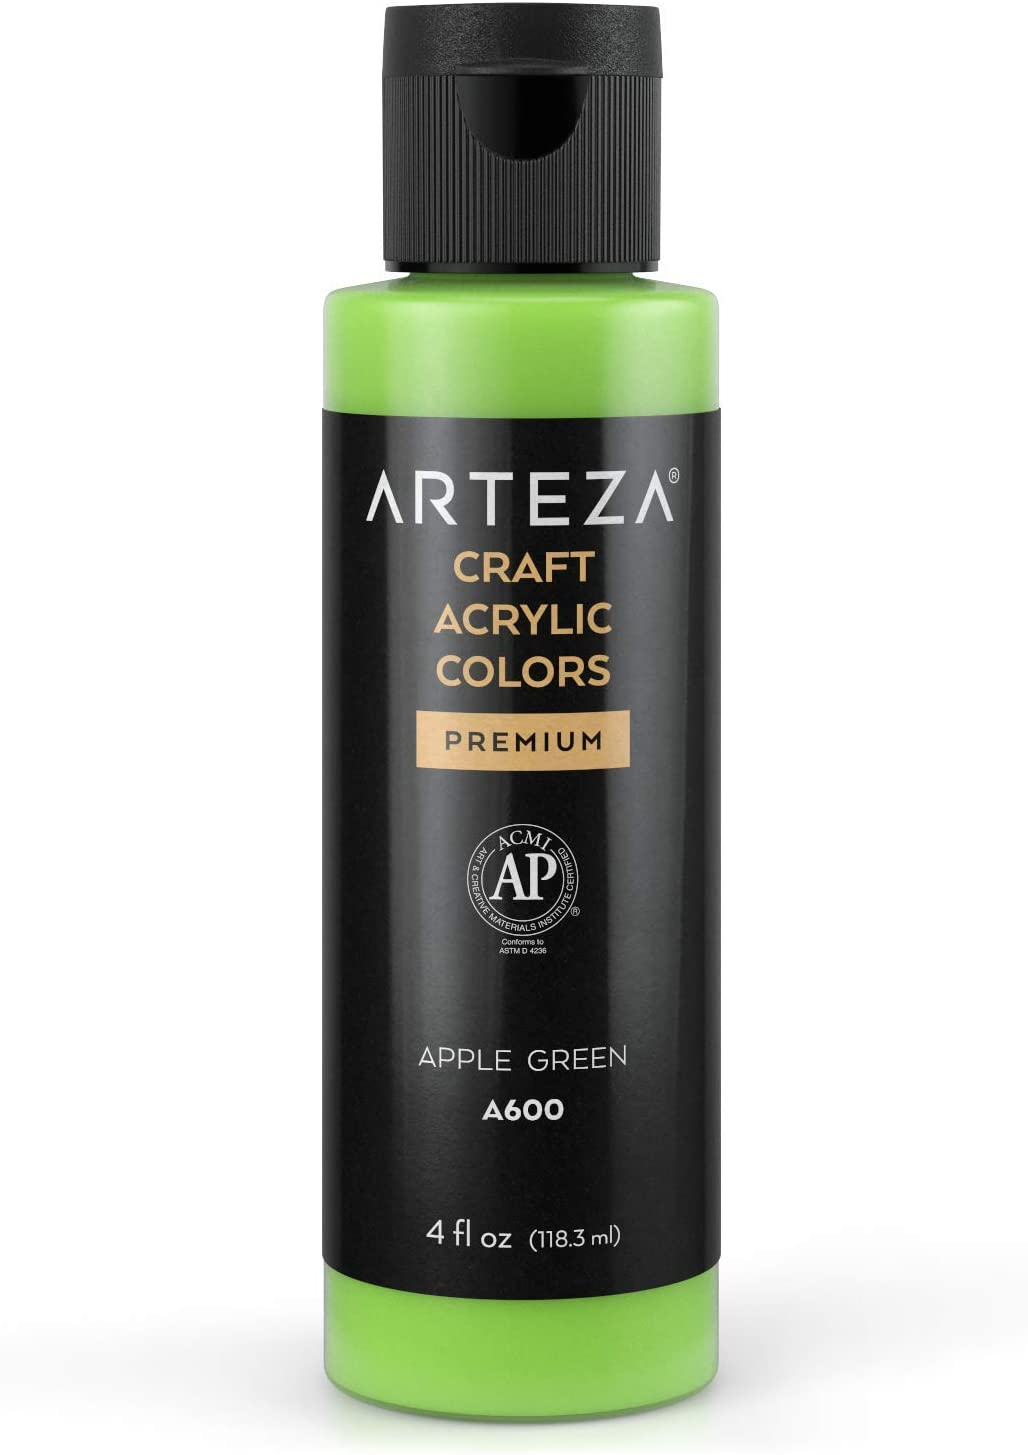 Arteza Craft Acrylic Paint, A600 Apple Green, 4fl oz (118 ml) Bottles, Water-Based, Blendable, Matte Acrylic Paints for Art & DIY Outdoor Projects on Glass, Wood, Ceramics, Fabrics, Paper & Canvas